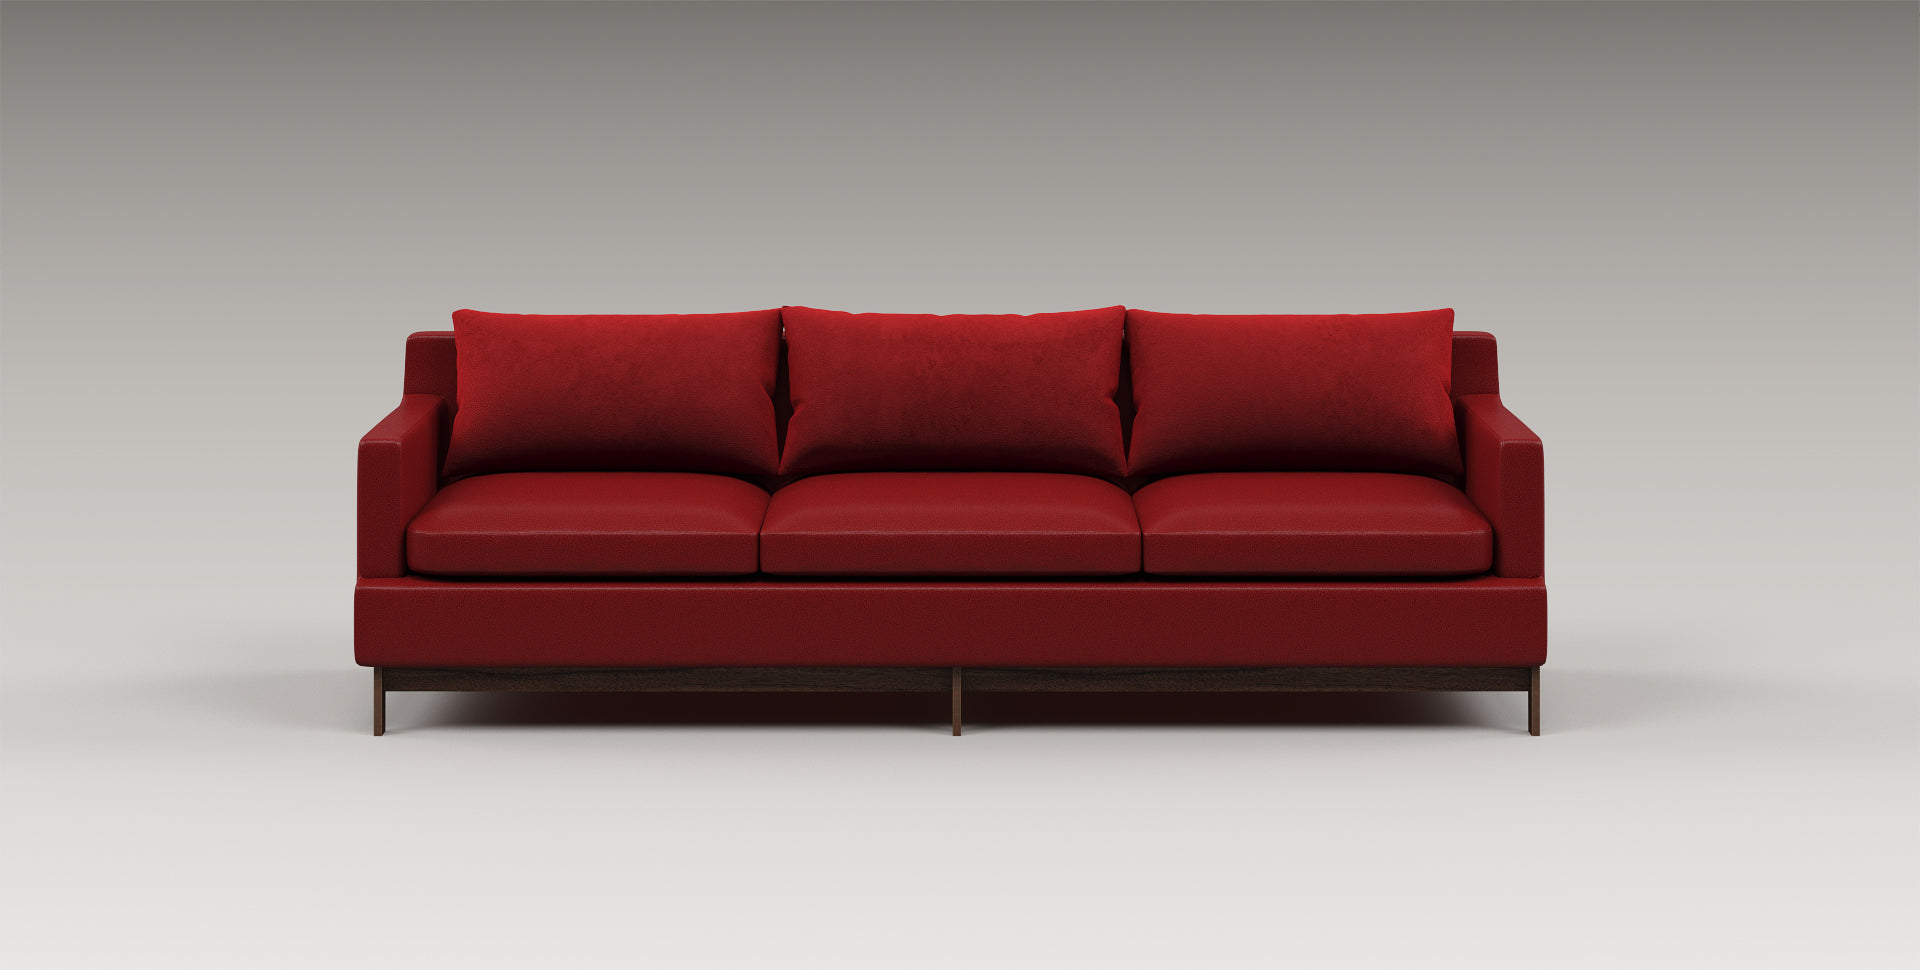 red sofa, luxury furniture, designer sofa, big sofa, suede sofa, leather sofa, bespoke furniture, 2 seater, 3 seater, 4 seater, designer sofa, comfortable pillows,